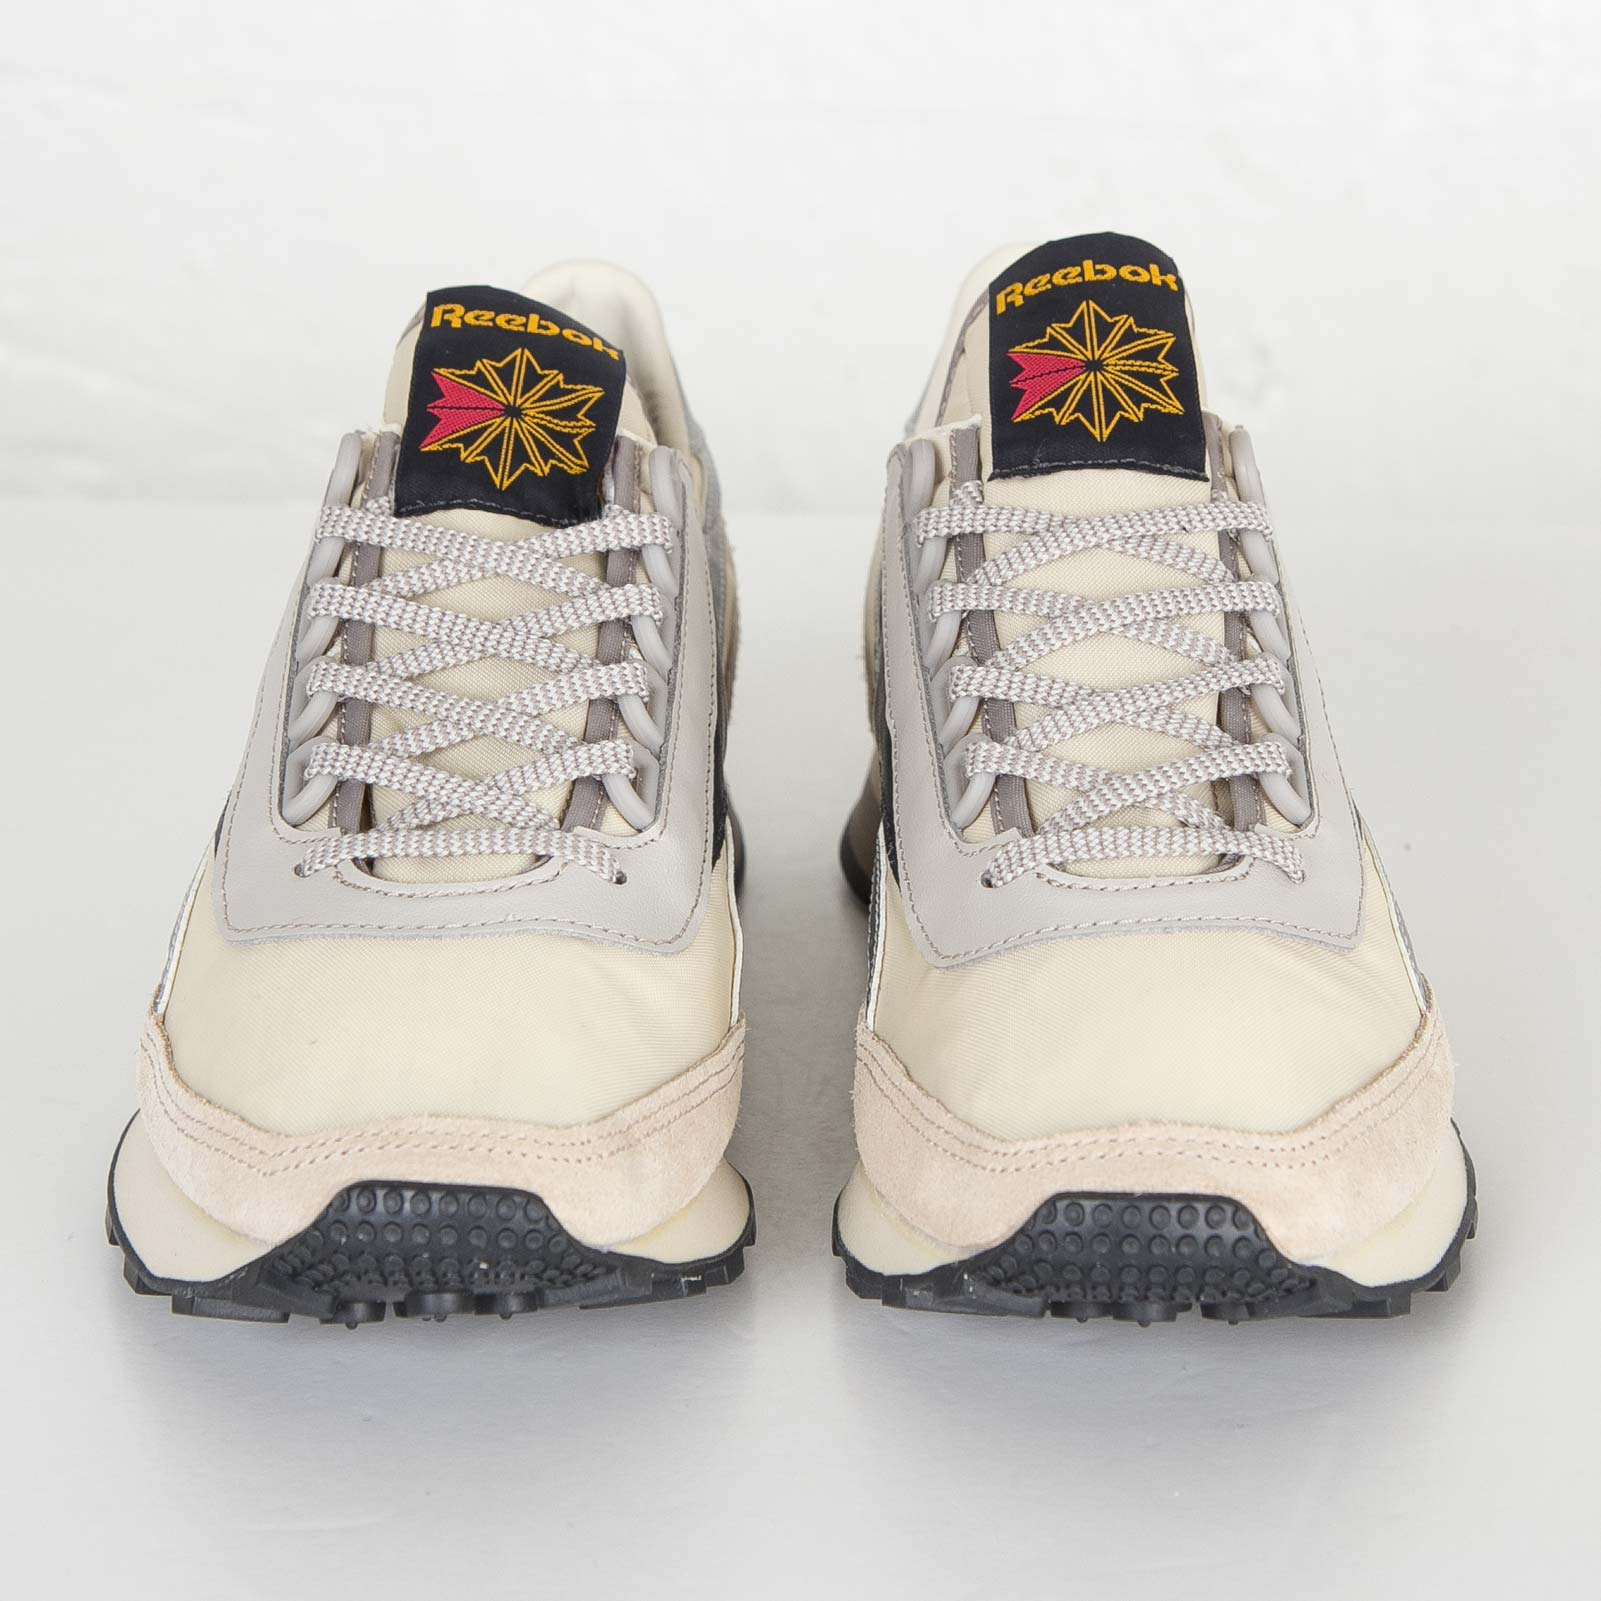 Womens Aztec Og Low-Top Sneakers, Grey Reebok